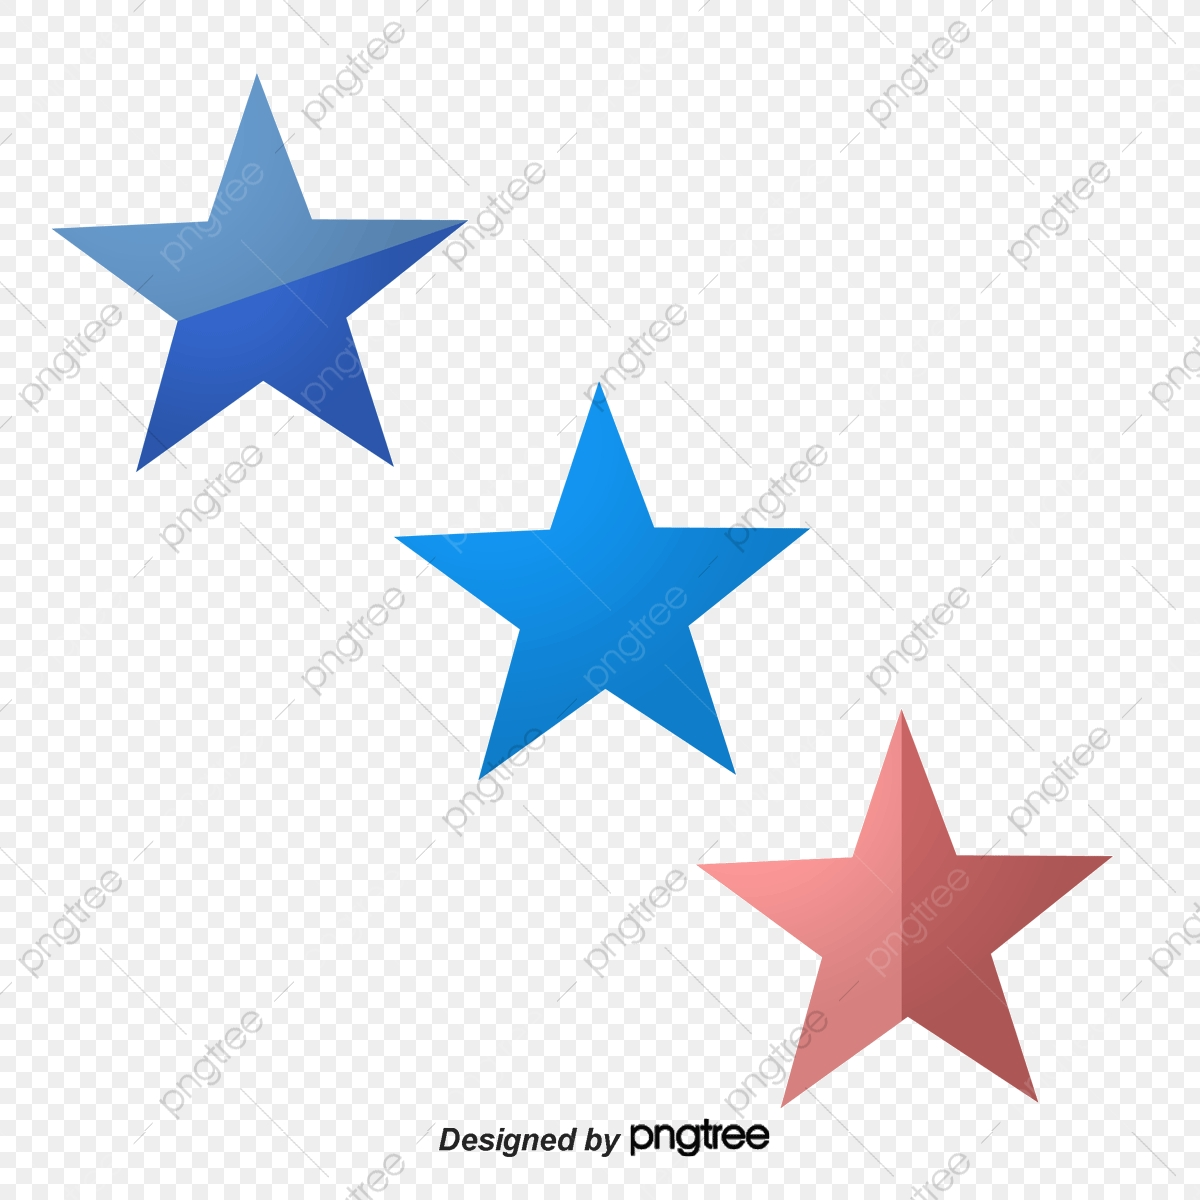 Yellow Star, Star Clipart, Vector, Five Pointed Star PNG and.